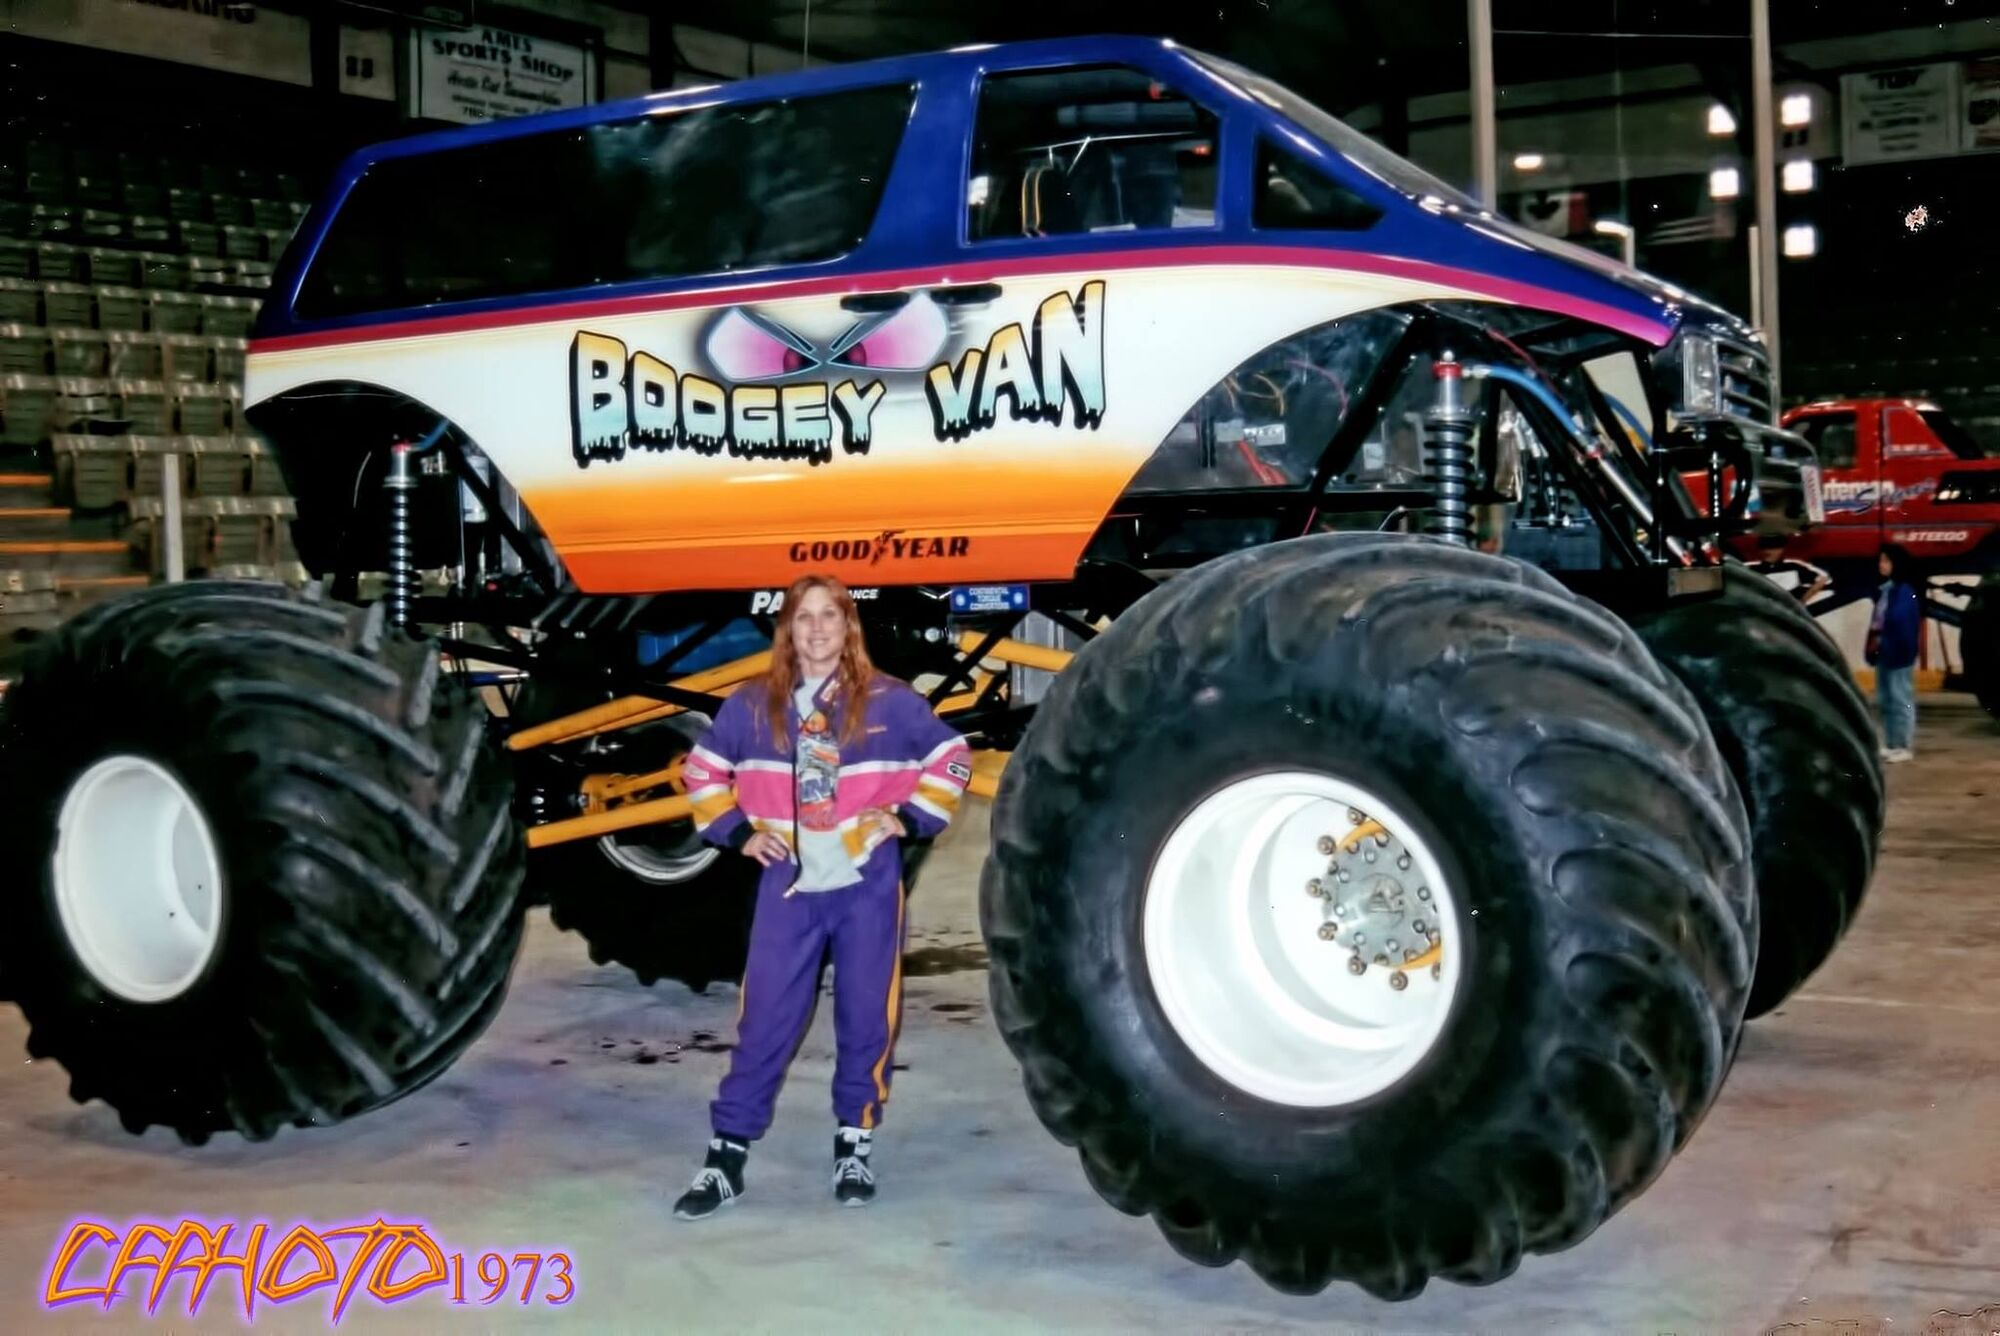 boogey van monster trucks wiki fandom powered by wikia. Black Bedroom Furniture Sets. Home Design Ideas